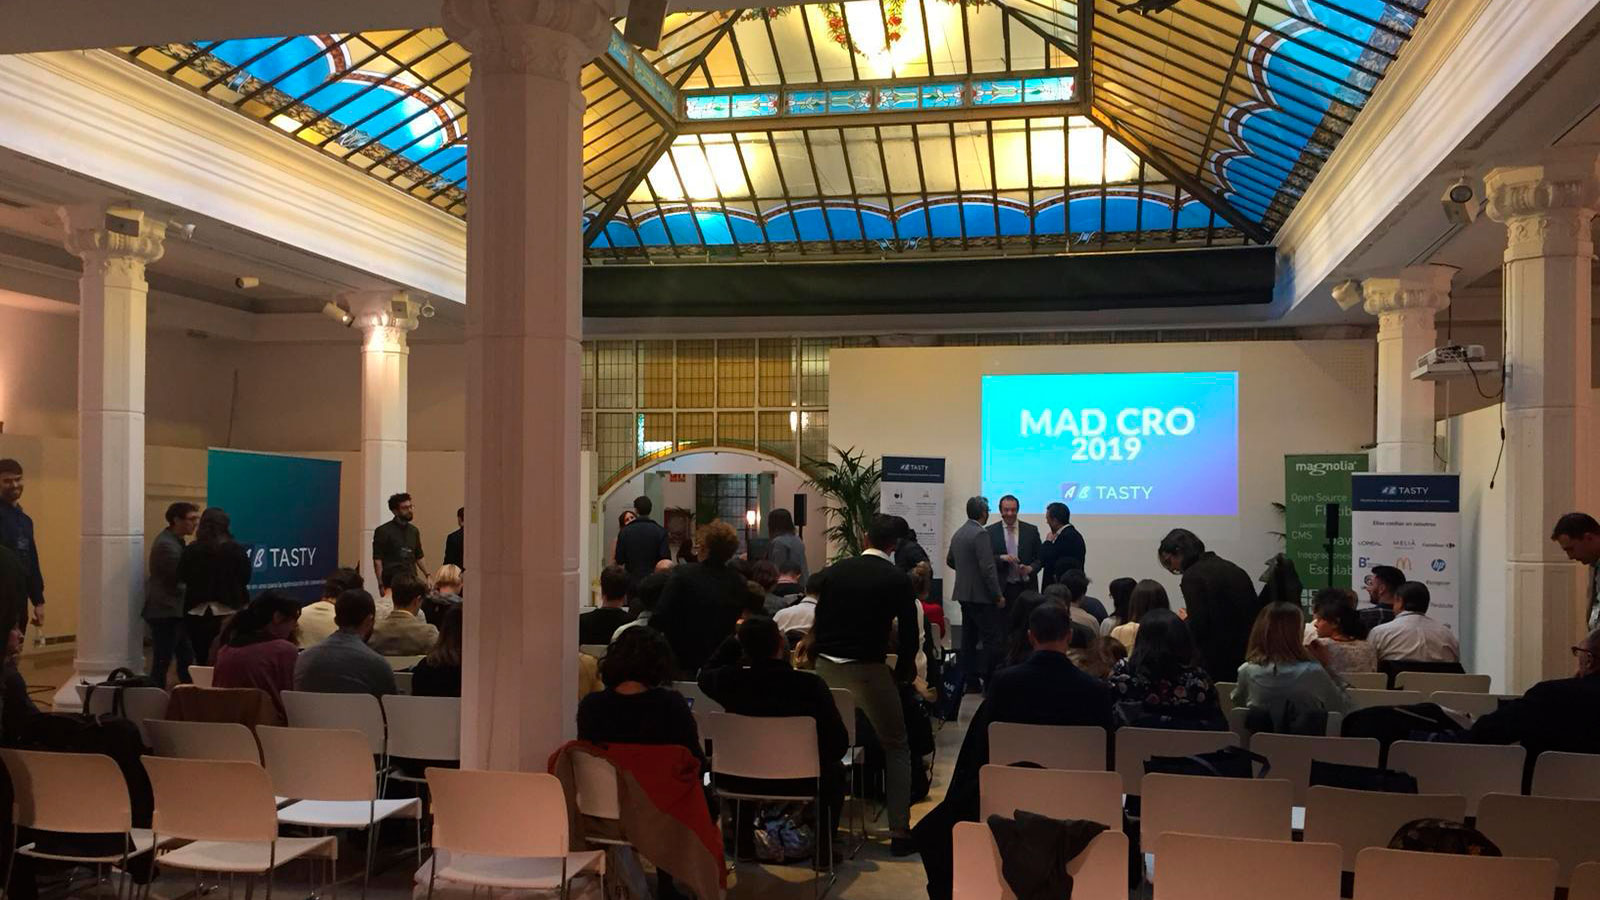 Evento MAD CRO